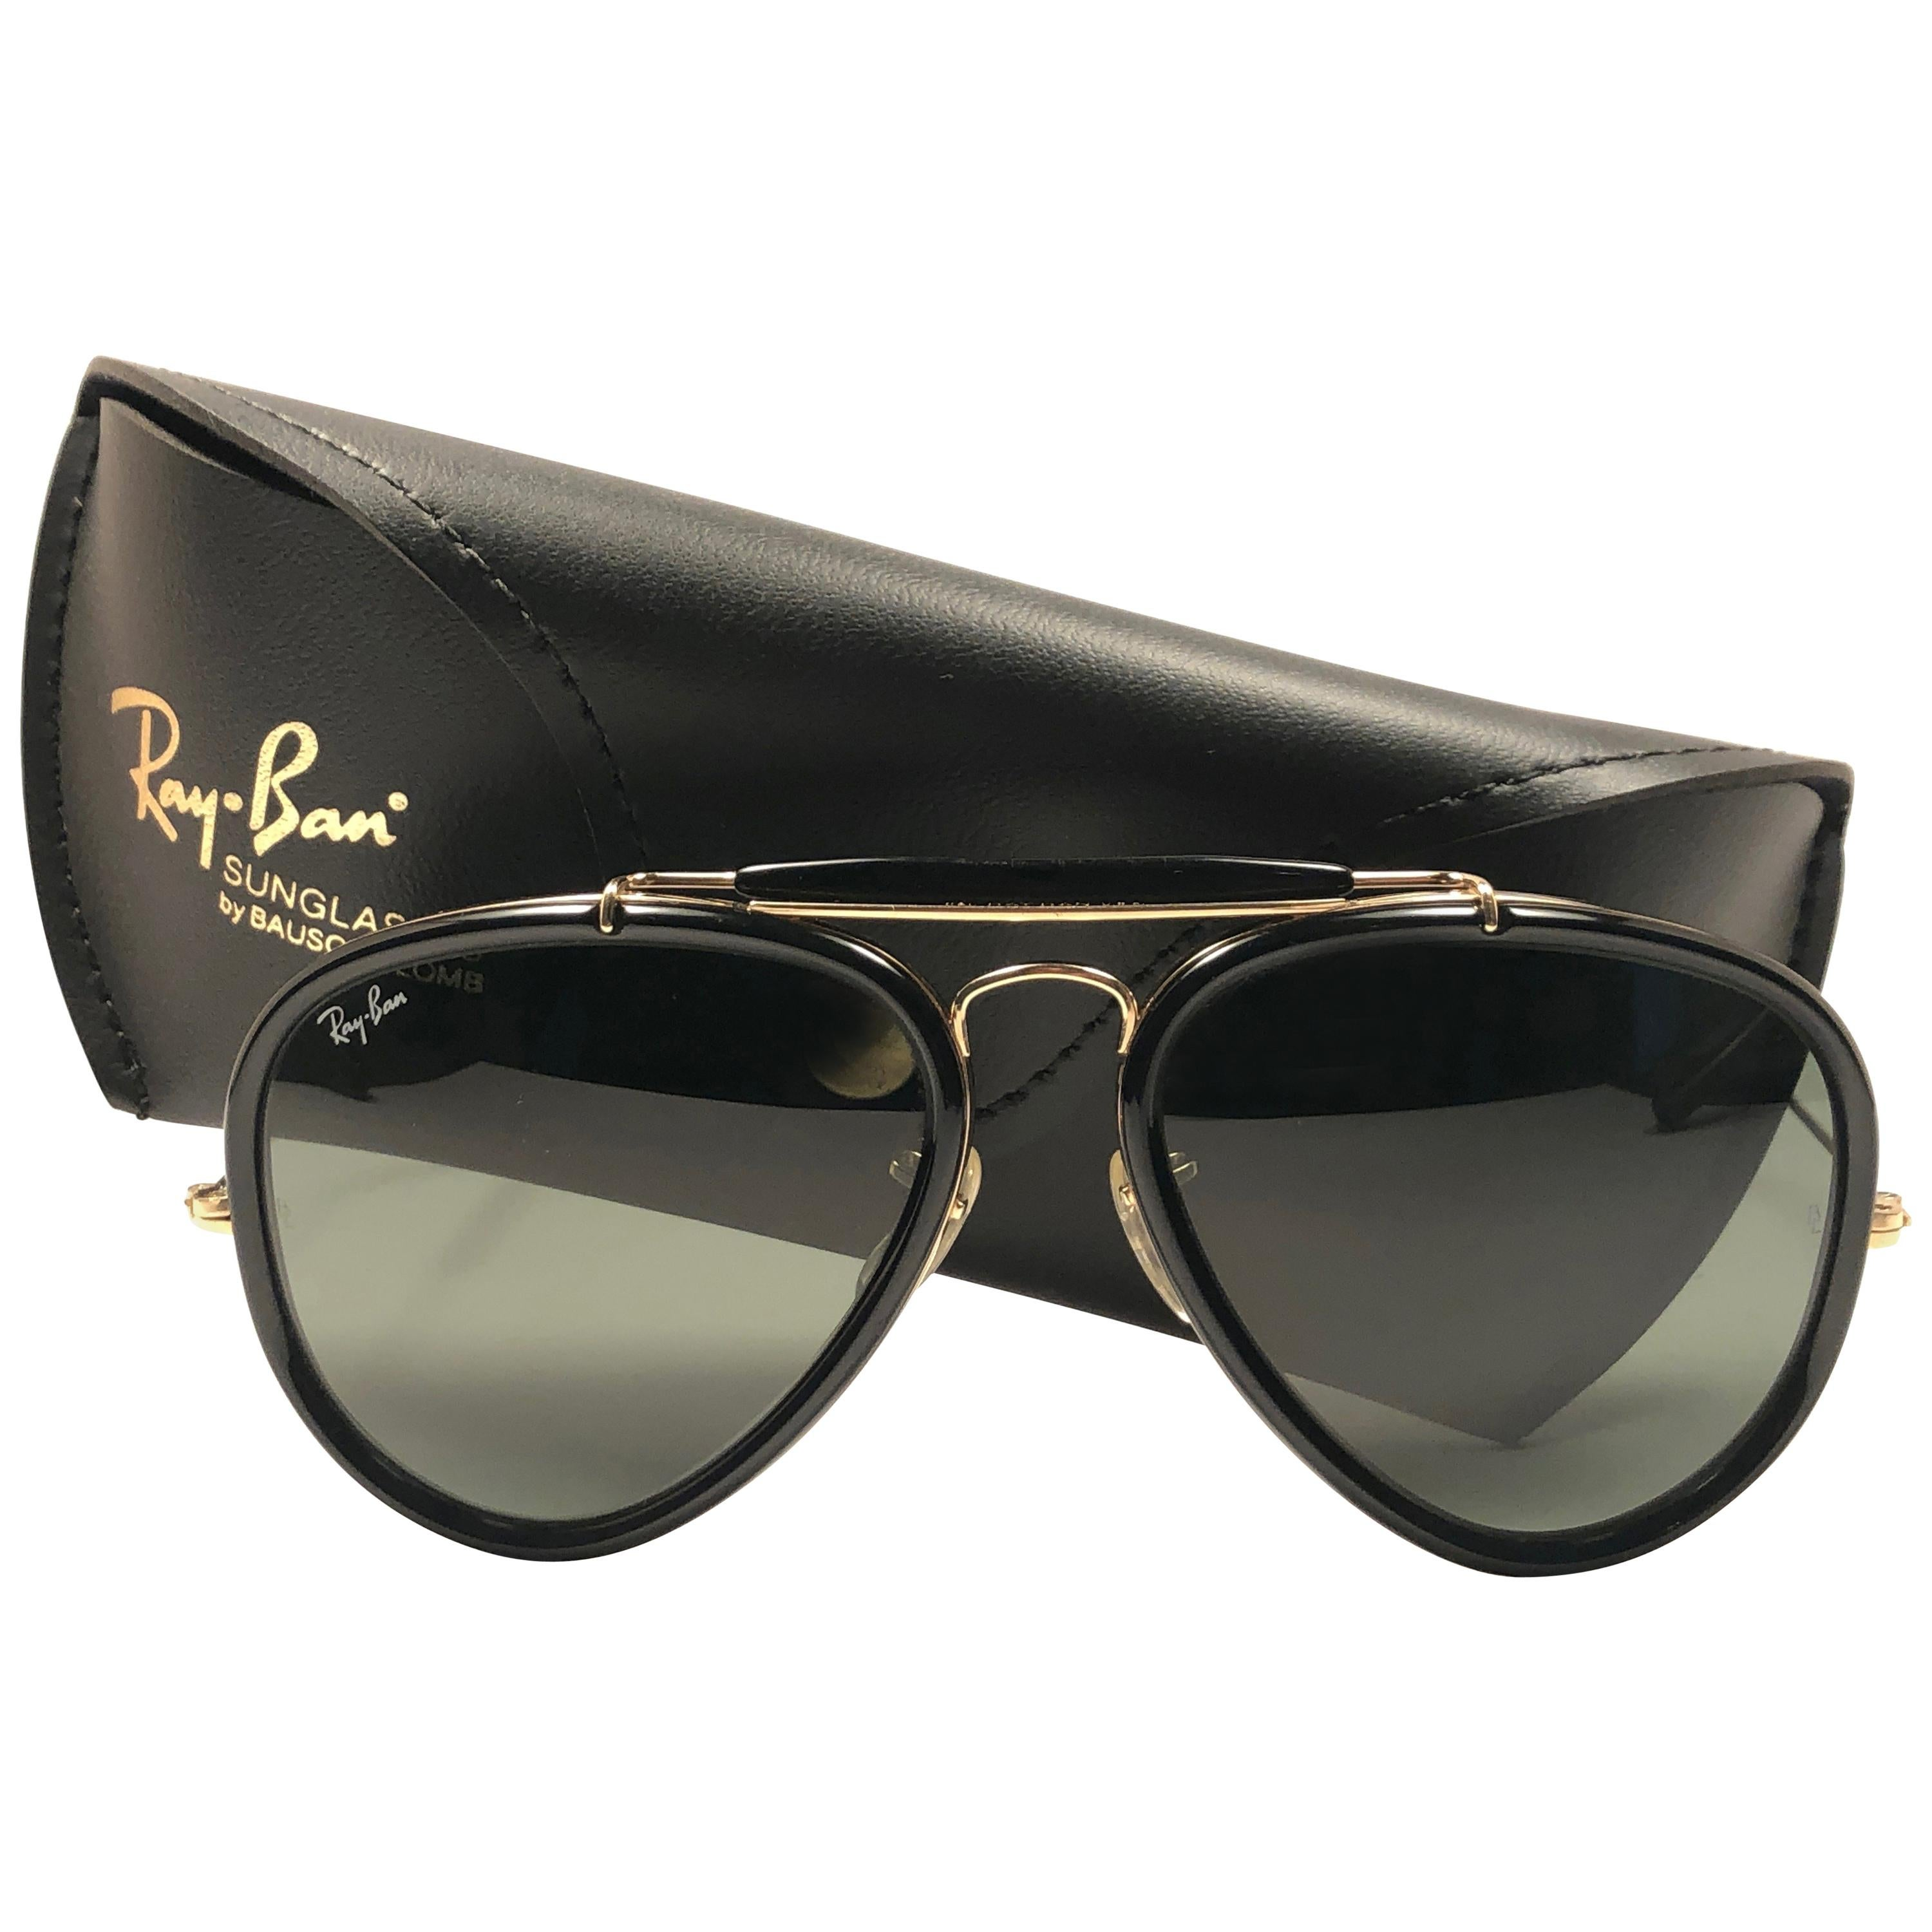 0e2f7106f0874 Ray Ban Vintage G Style Black Outdoorsman 62Mm B L Sunglasses